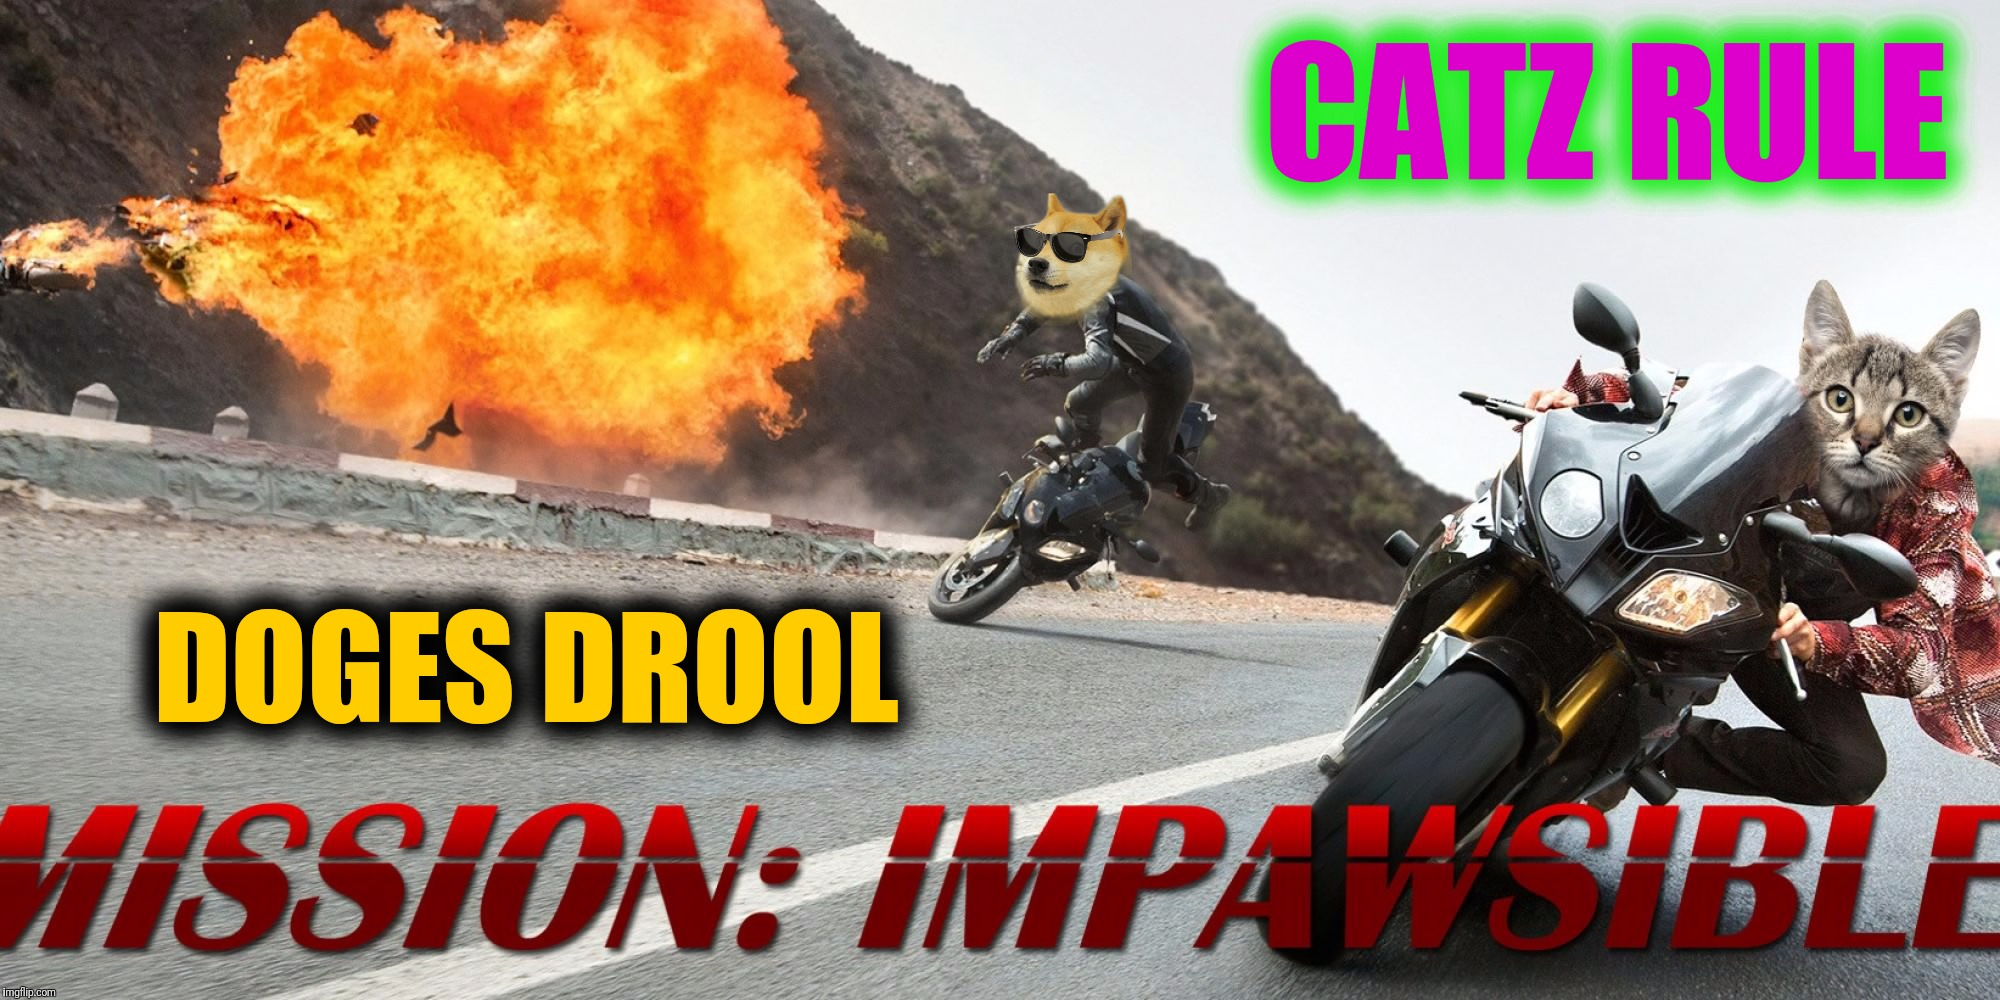 MISSION: IMPAWSSIBLE | DOGES DROOL CATZ RULE | image tagged in memes,mission impossible,mission impawssible,cats,dogs,its raining catz and doges | made w/ Imgflip meme maker